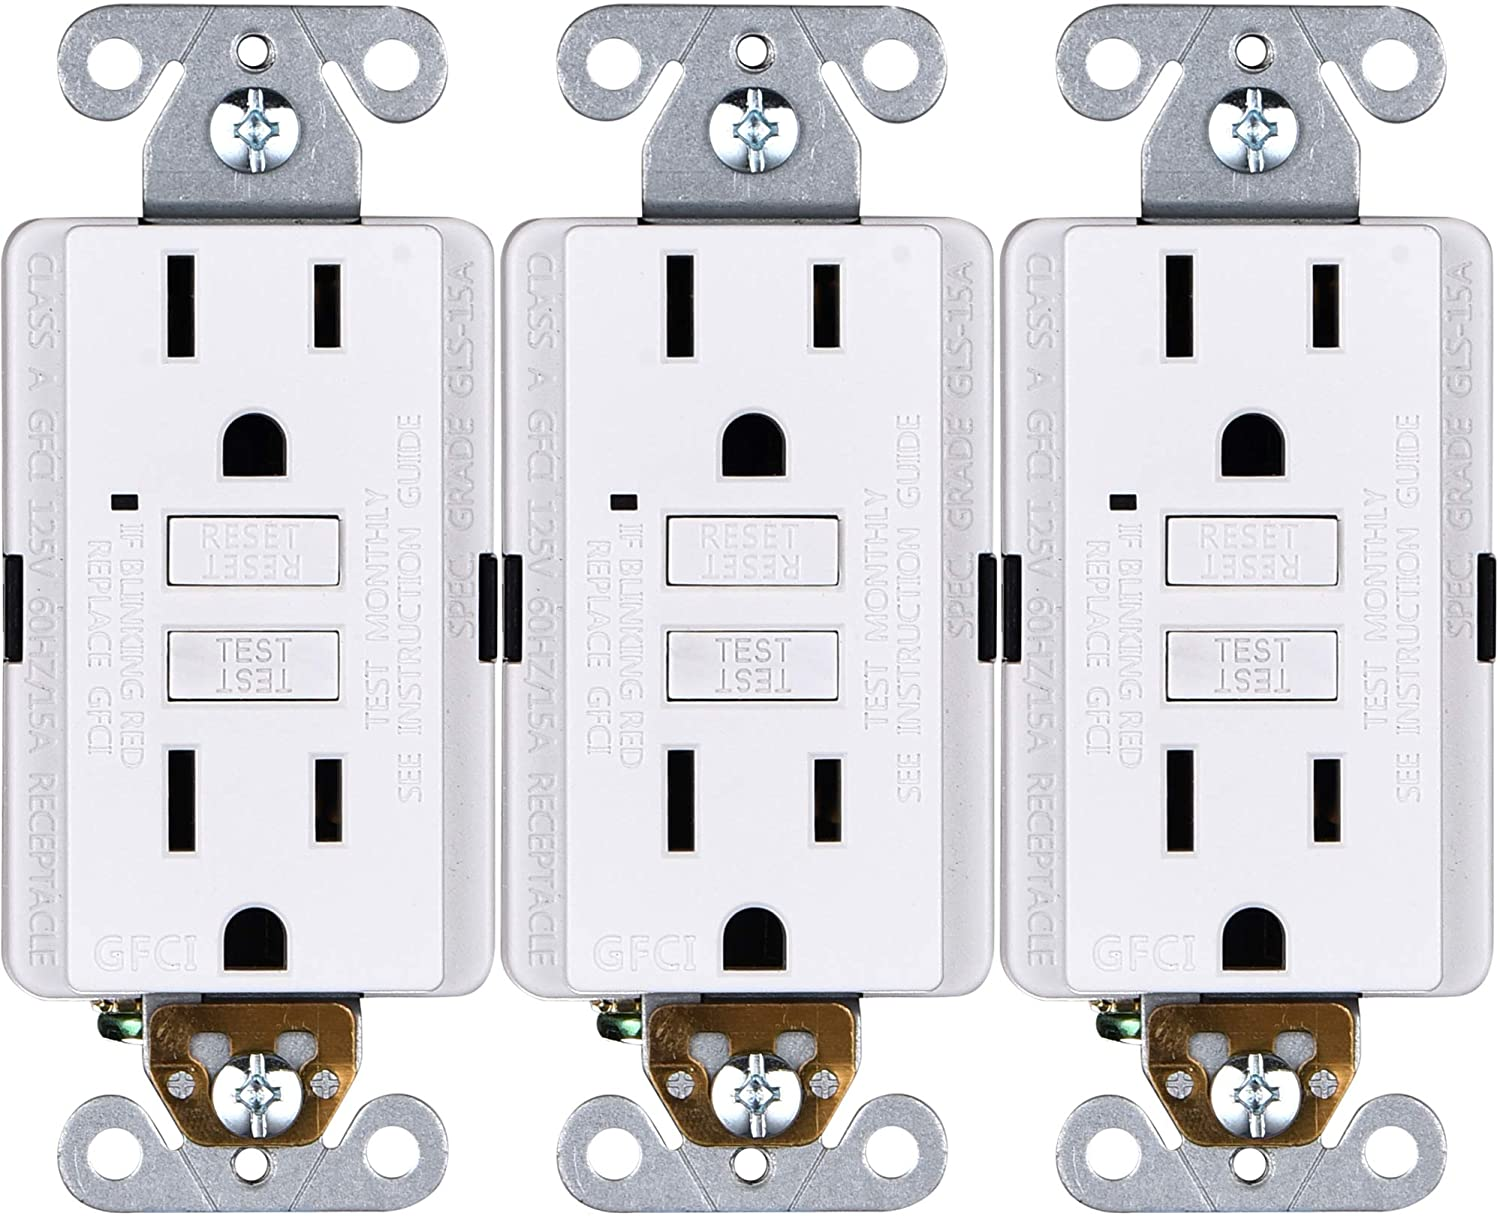 15A GFCI Outlets [3-Pack], Non-Tamper-Resistant GFI Duplex Receptacles with LED Indicator, Self-Test Ground Fault Circuit Interrupter, ETL Listed, White, 3 Piece - -